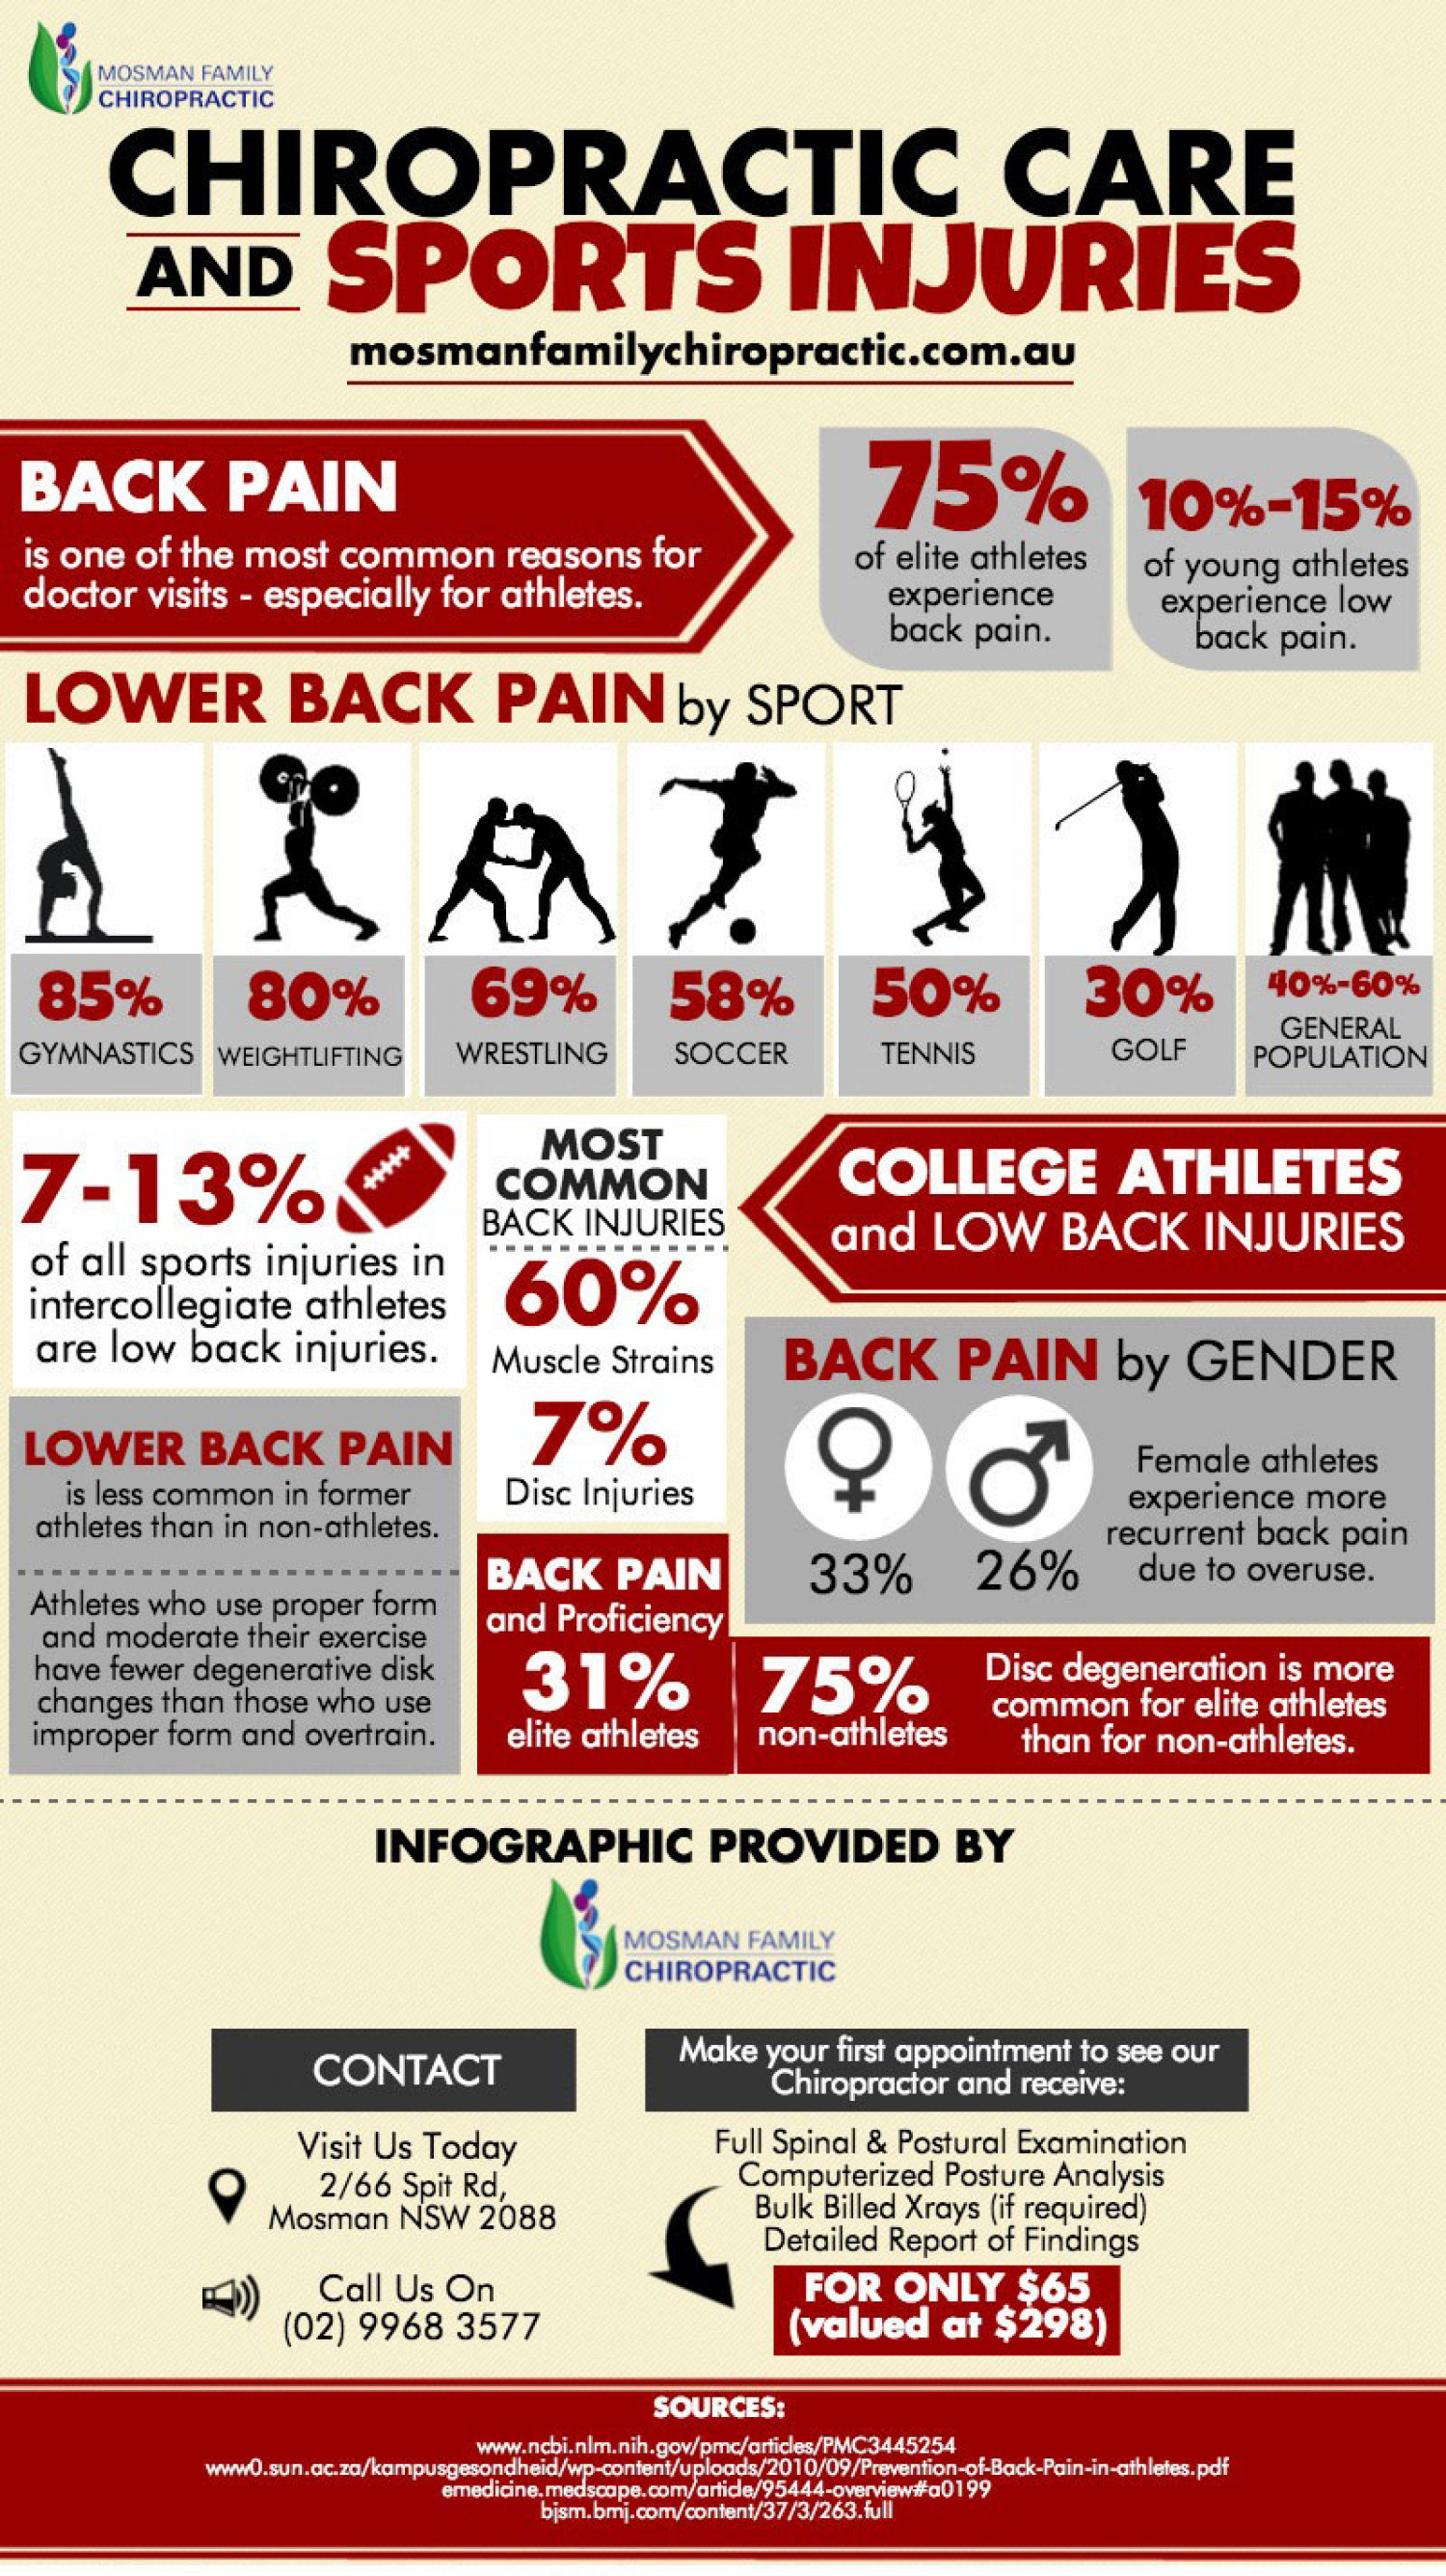 Chiropractic Care and Sports Injuries Infographic